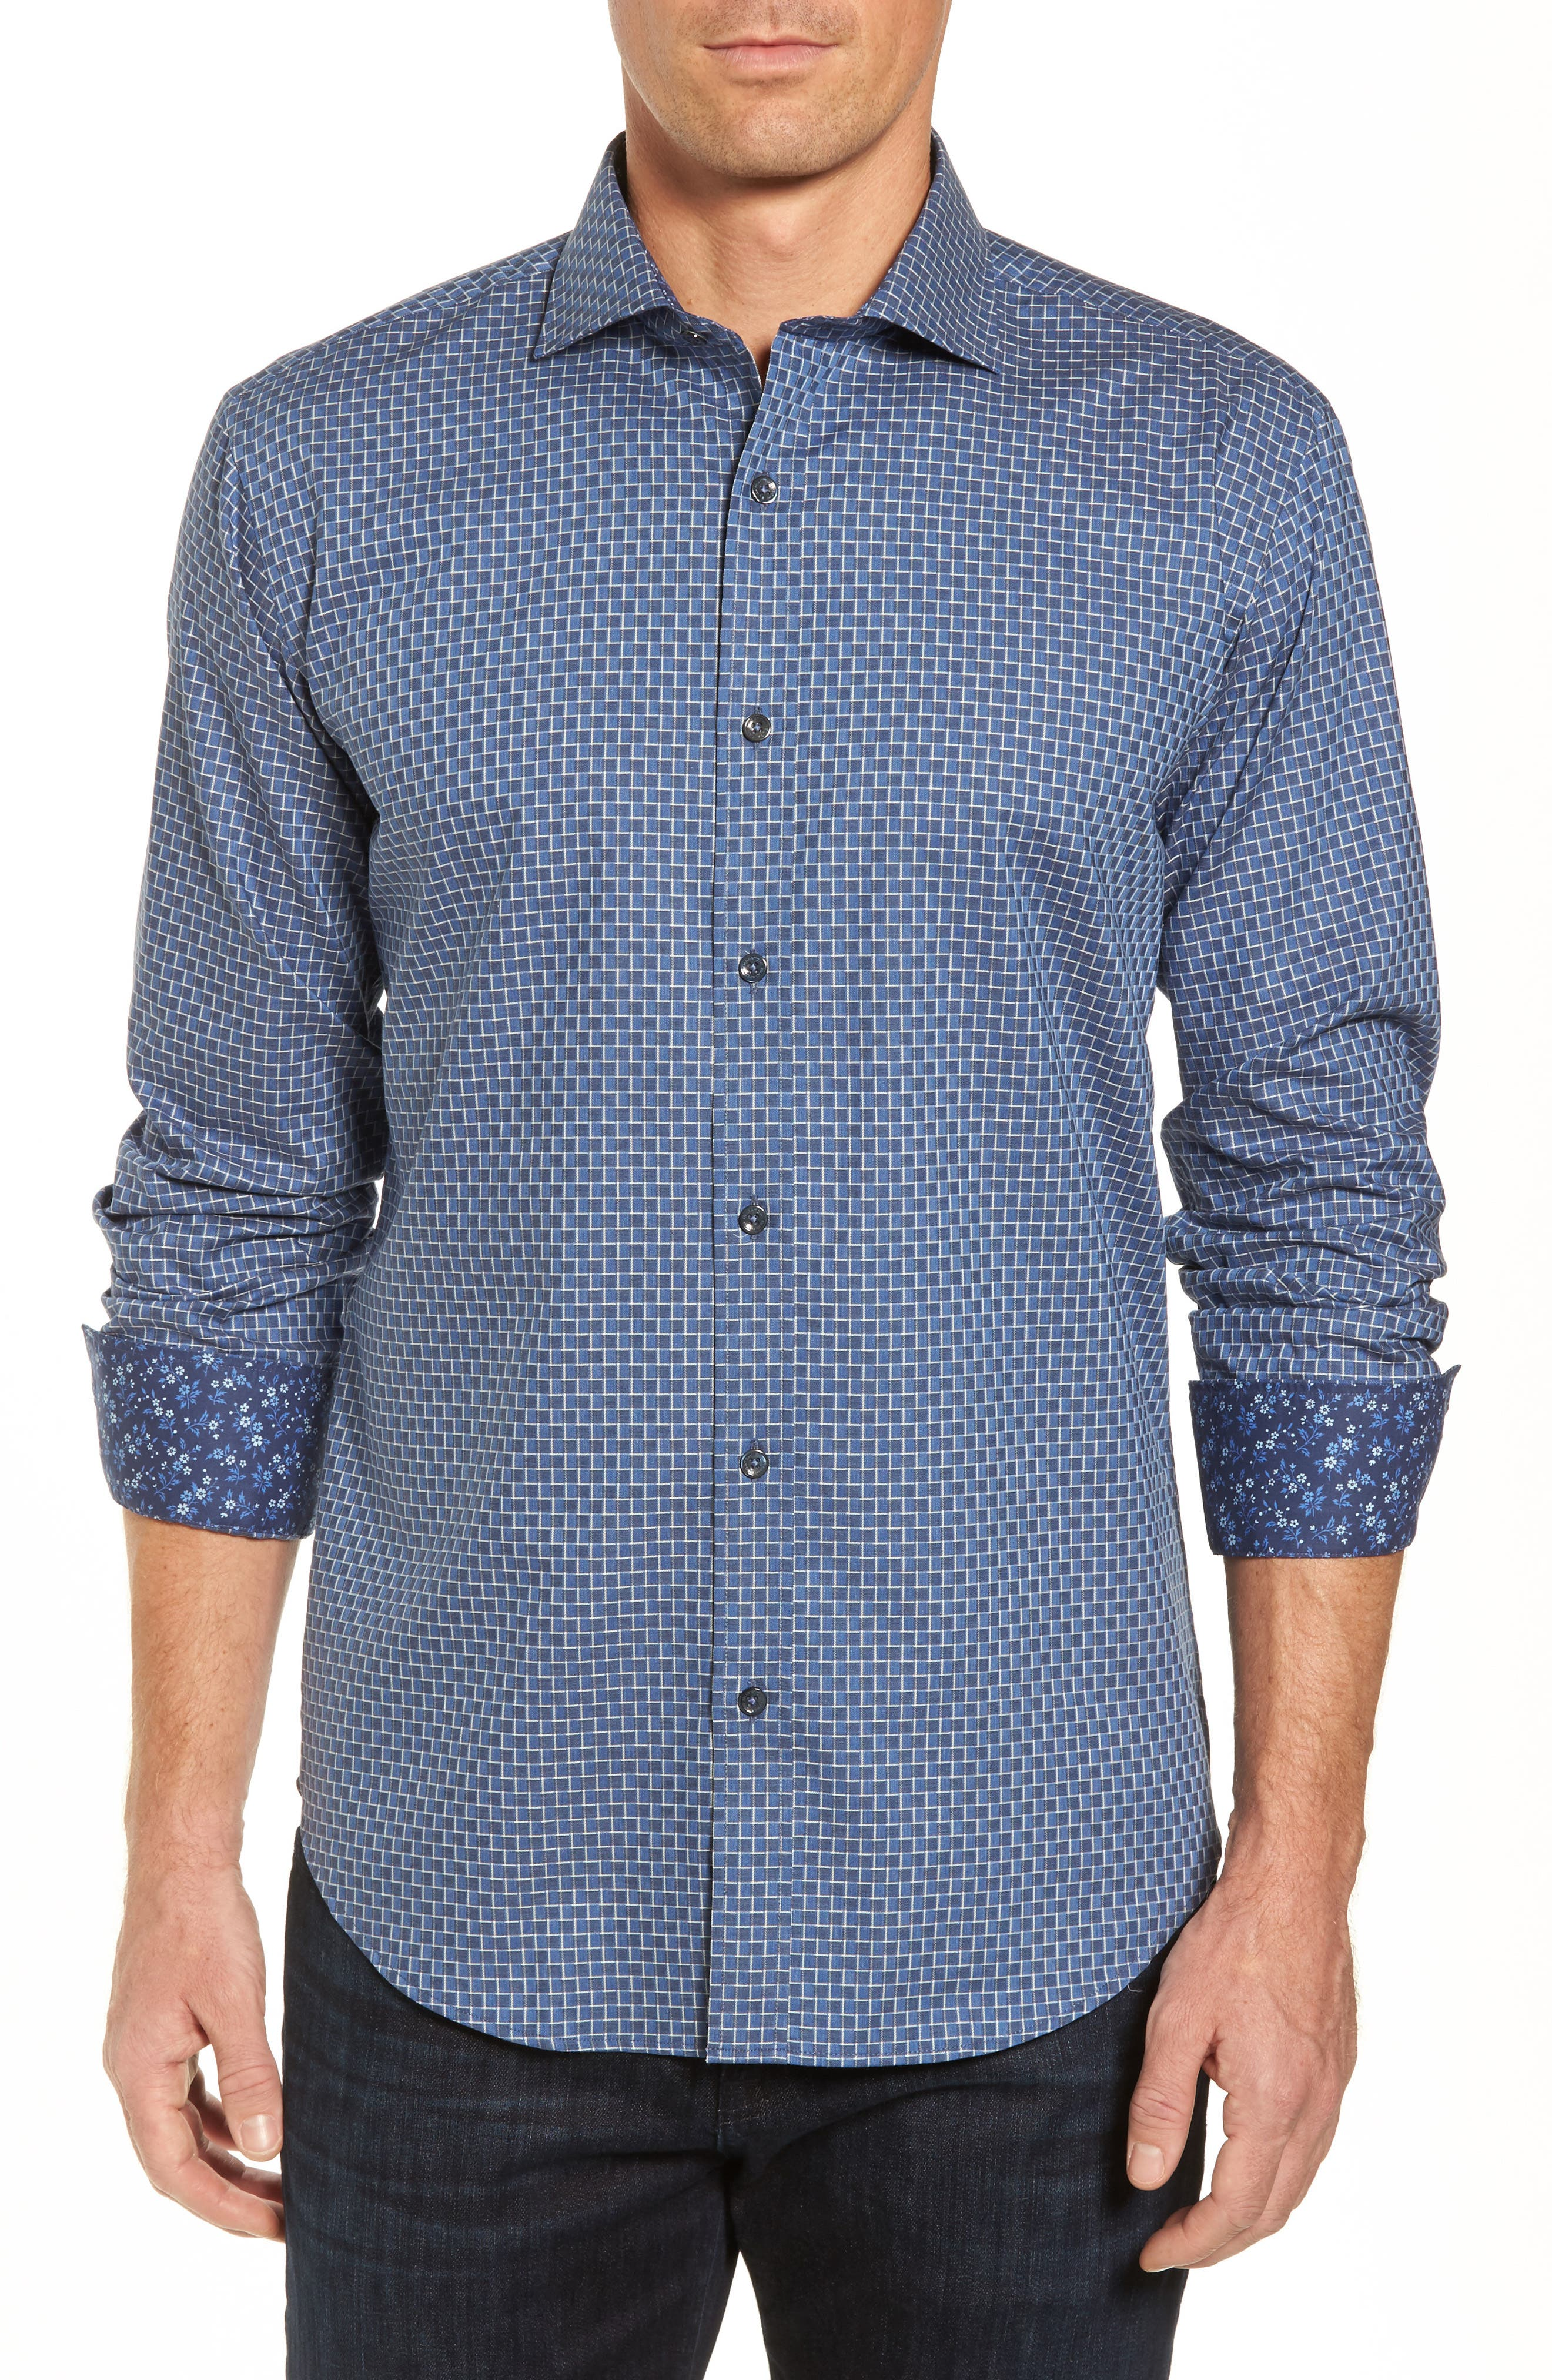 Alternate Image 1 Selected - Bugatchi Shaped Fit Jacquard Sport Shirt